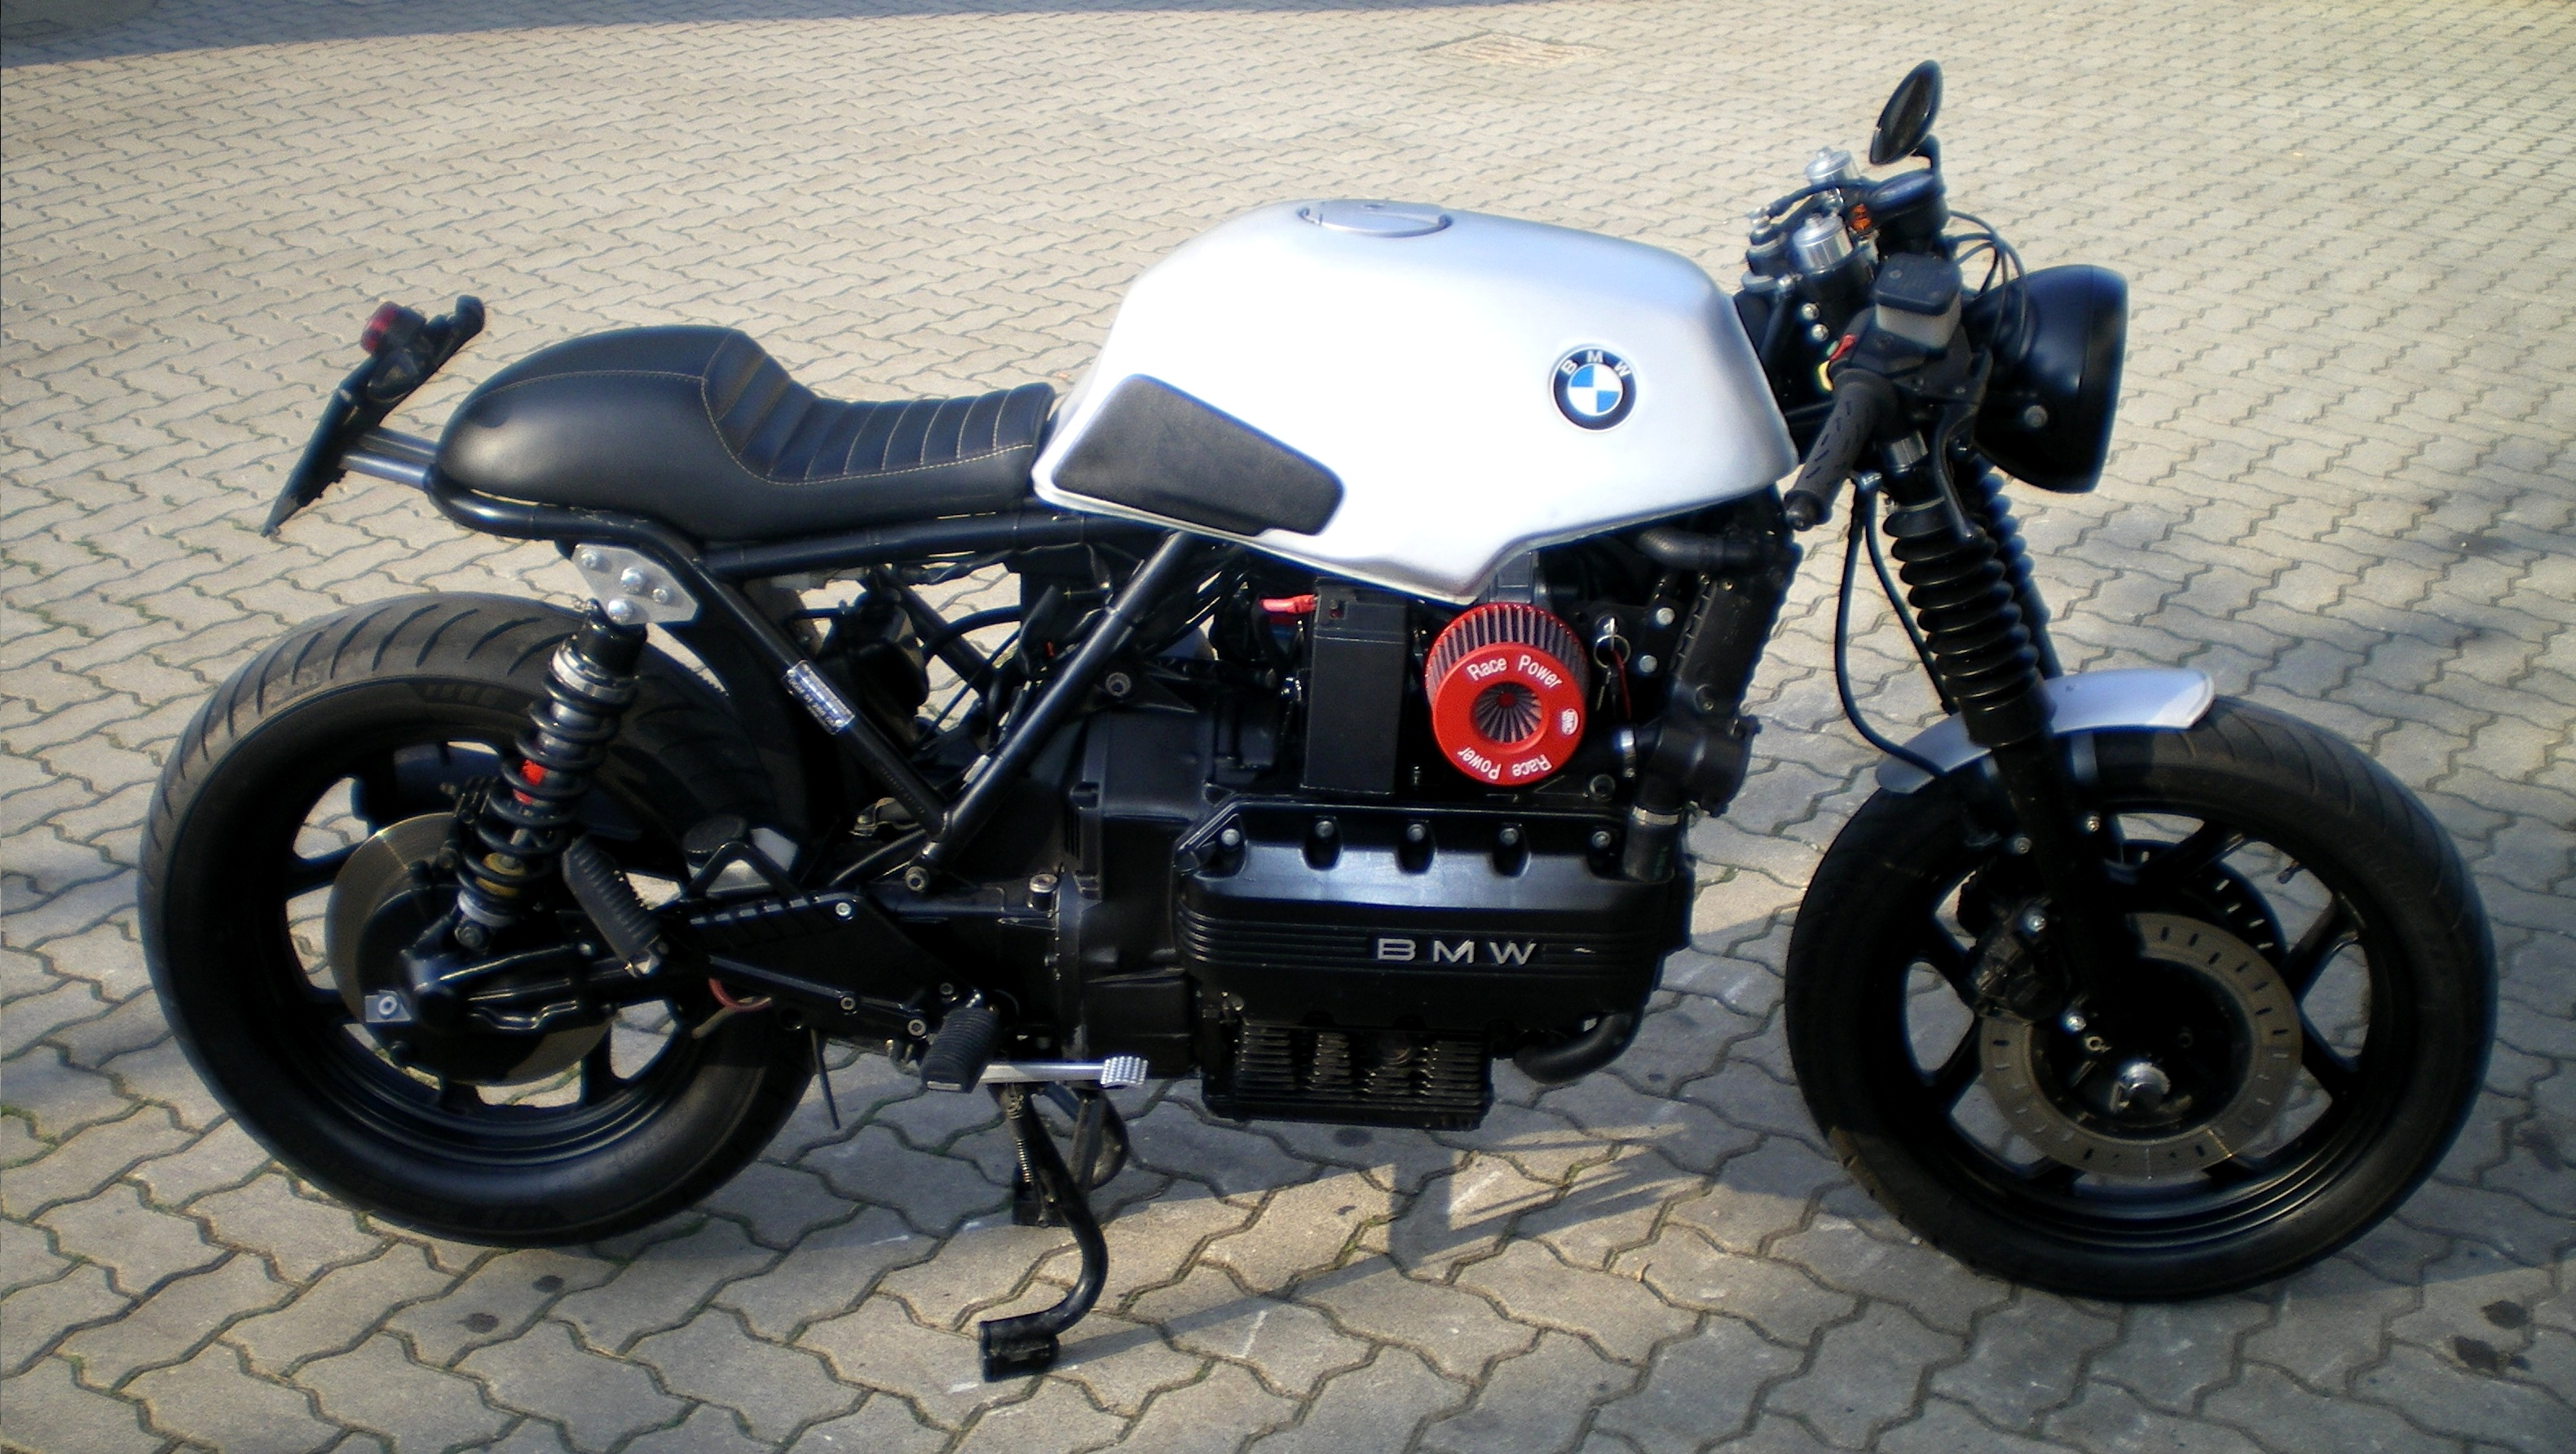 BMW K100RT images #12217